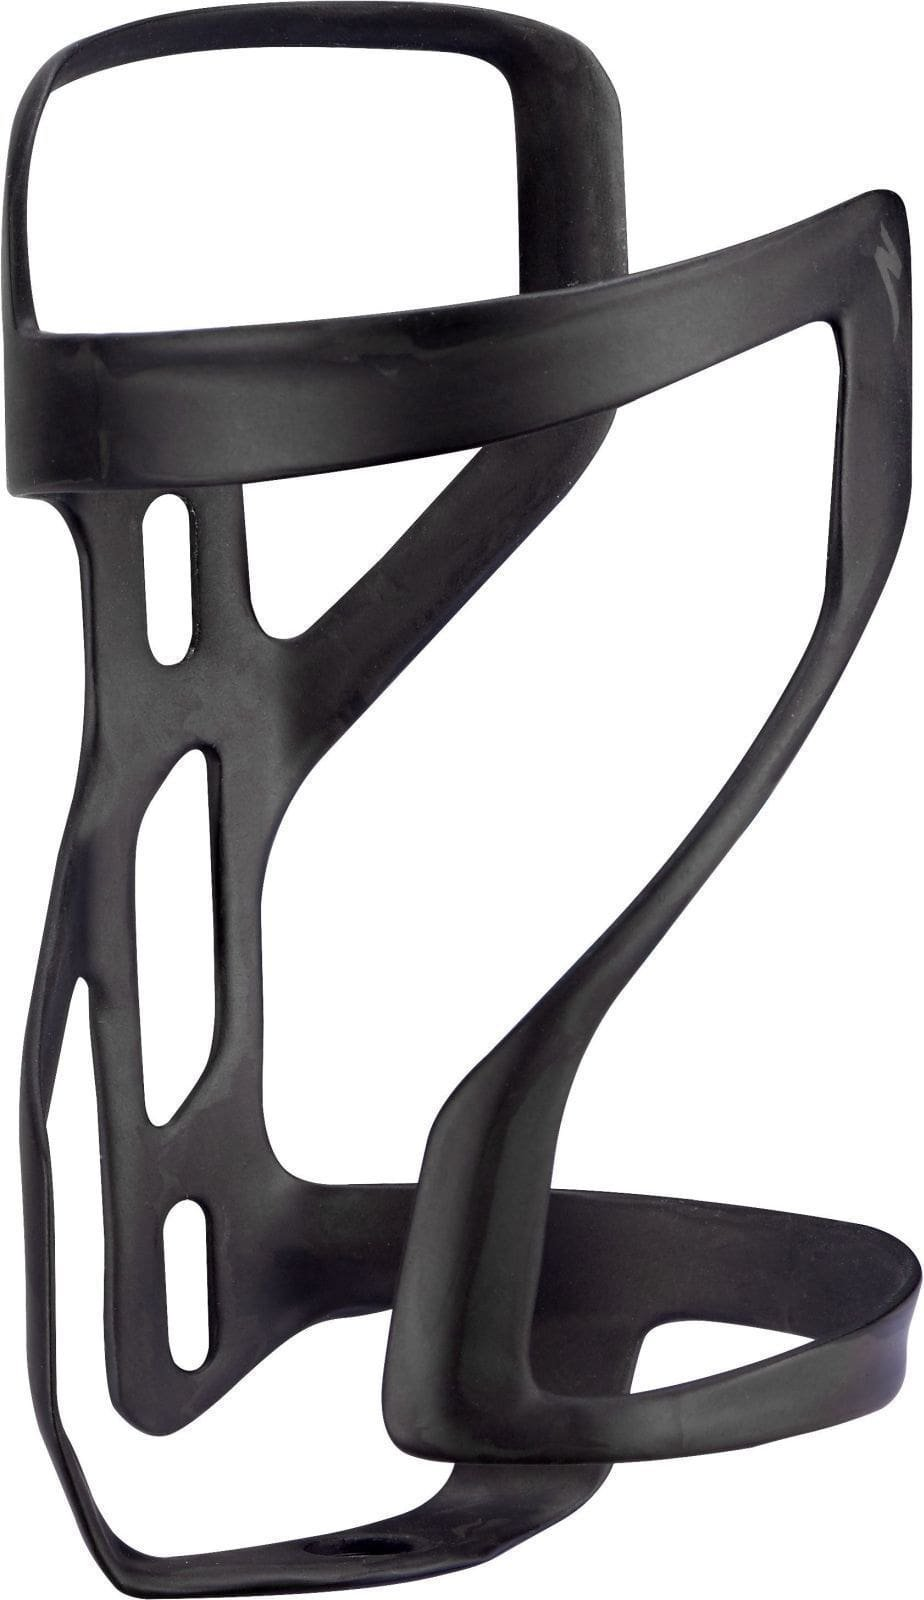 Specialized S-Works Carbon Zee Cage II - Right